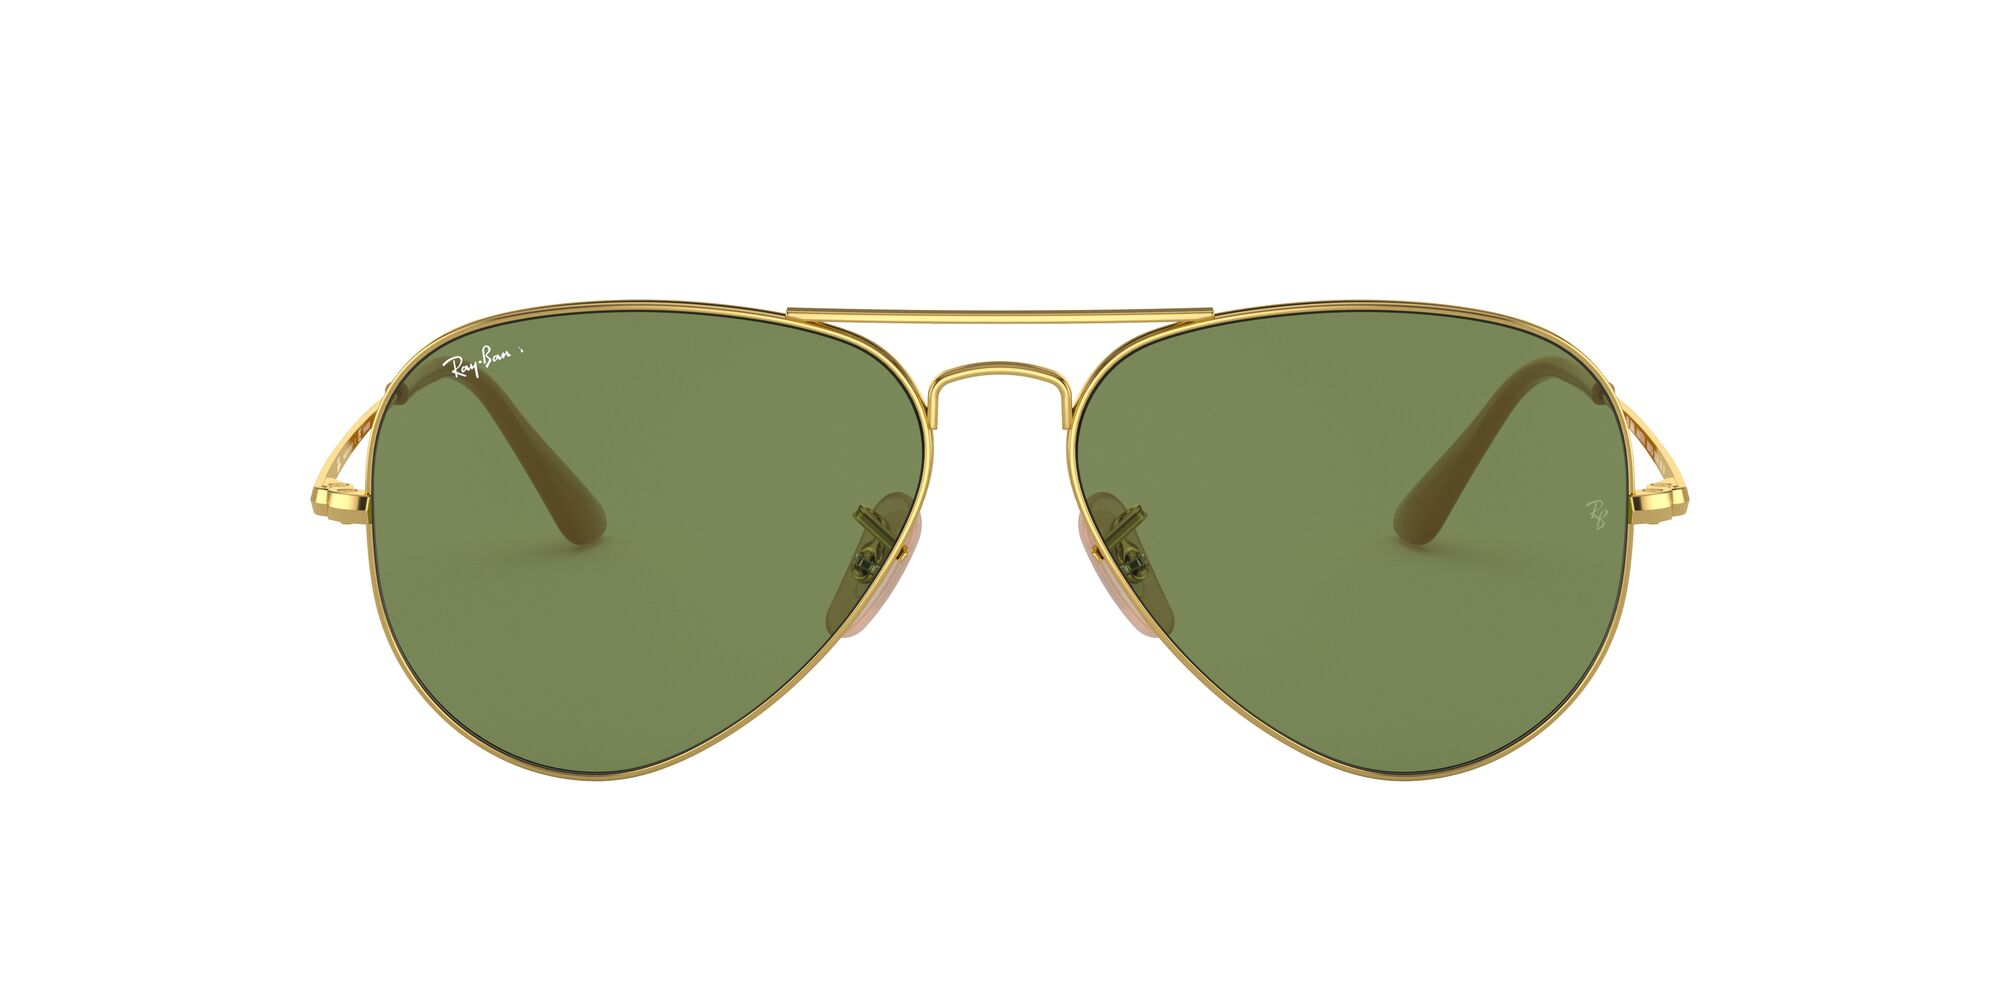 Front Ray-Ban Ray-Ban 0RB3689 9064O9 55/14 Goud/Groen